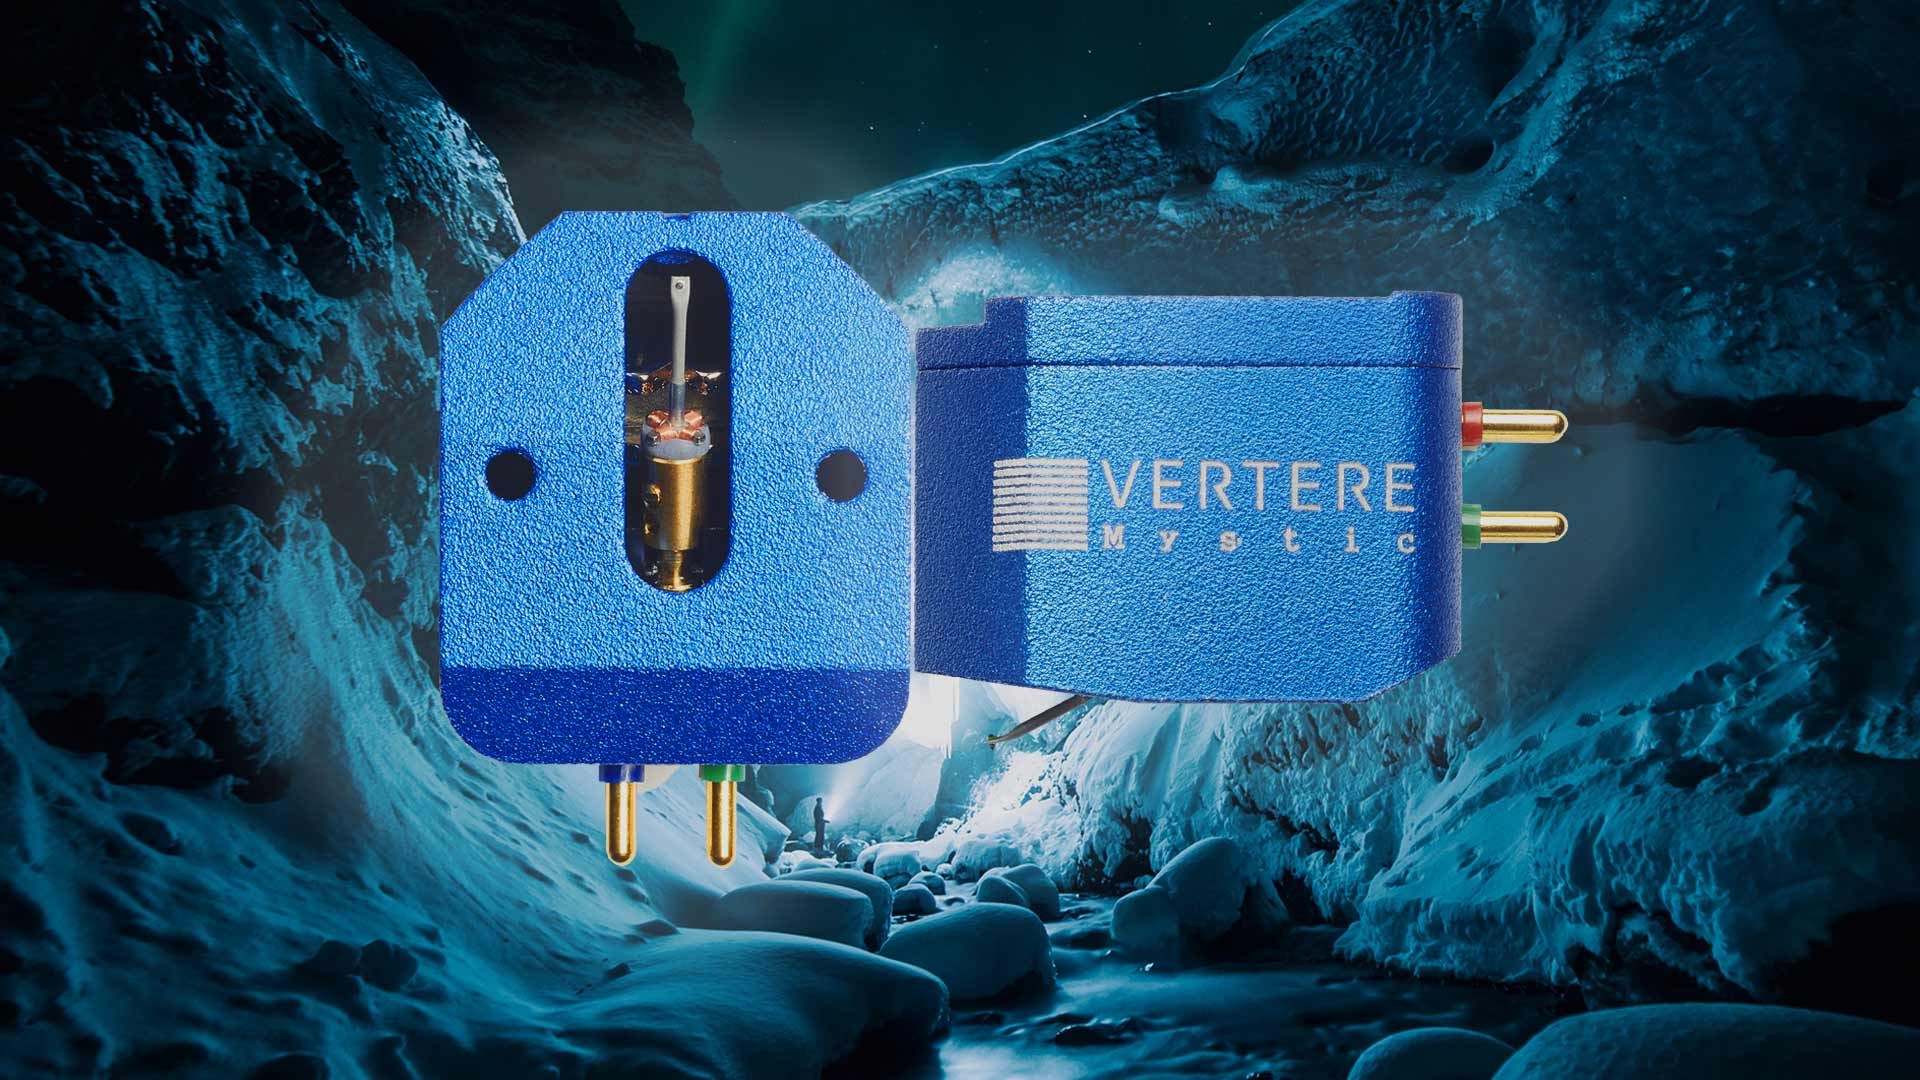 Vertere Acoustics Announce New Mystic MC Cartridge | Unilet Sound & Vision